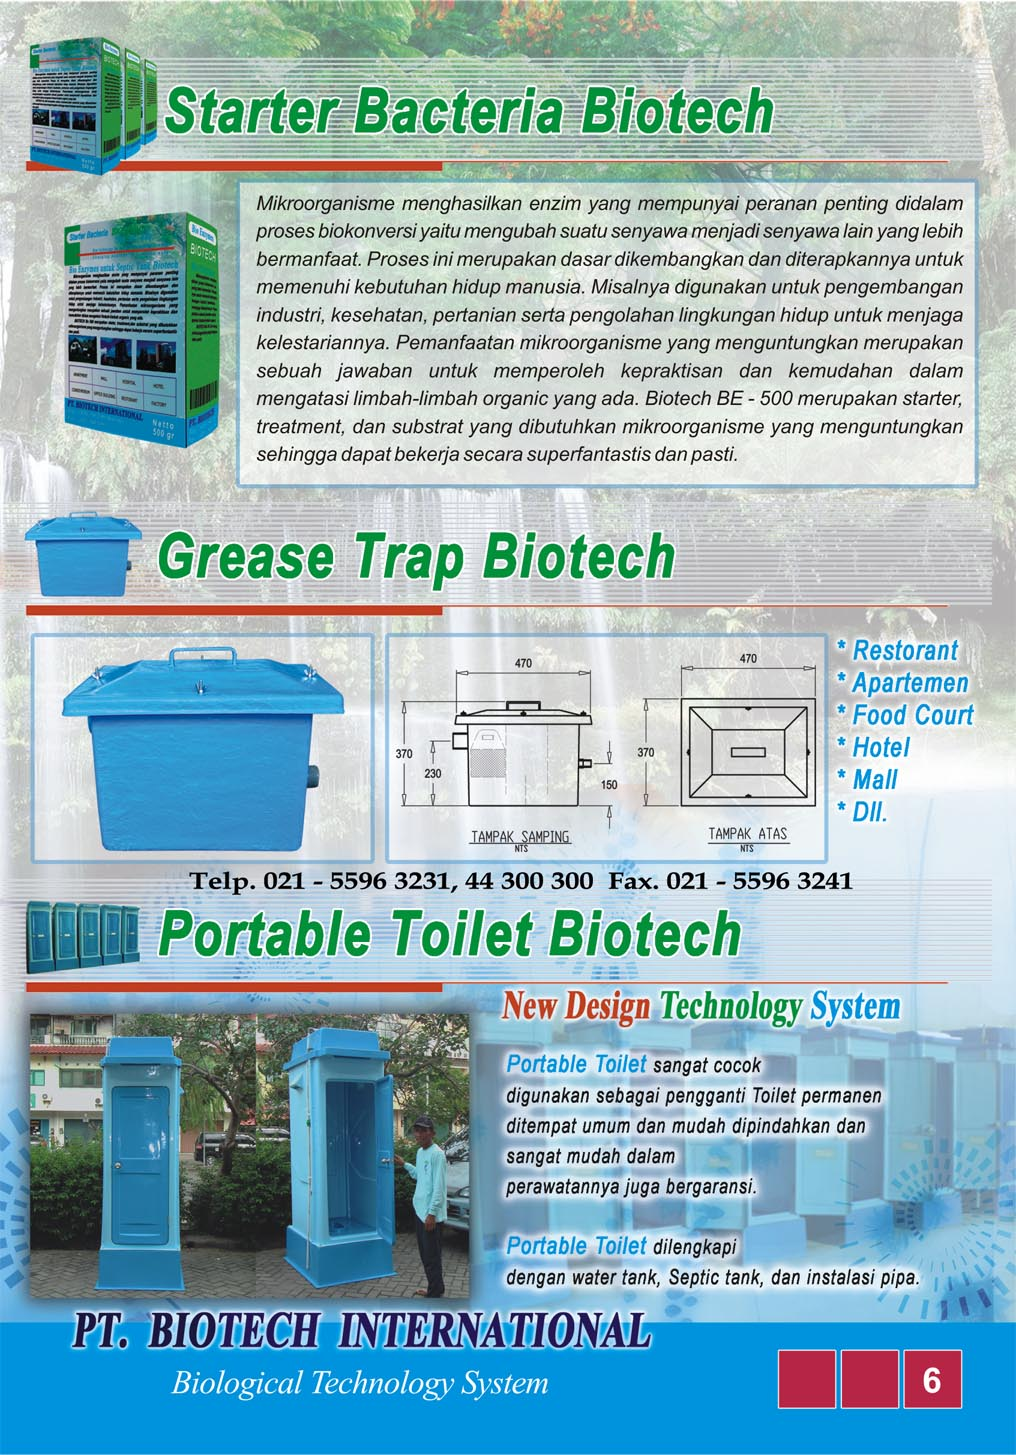 PORTABLE TOILET BIOTECH, FLEXIBLE TOILET, WC OUT DOOR, BUBUK BAKTERI PENGURAI TINJA, WC SEMENTARA